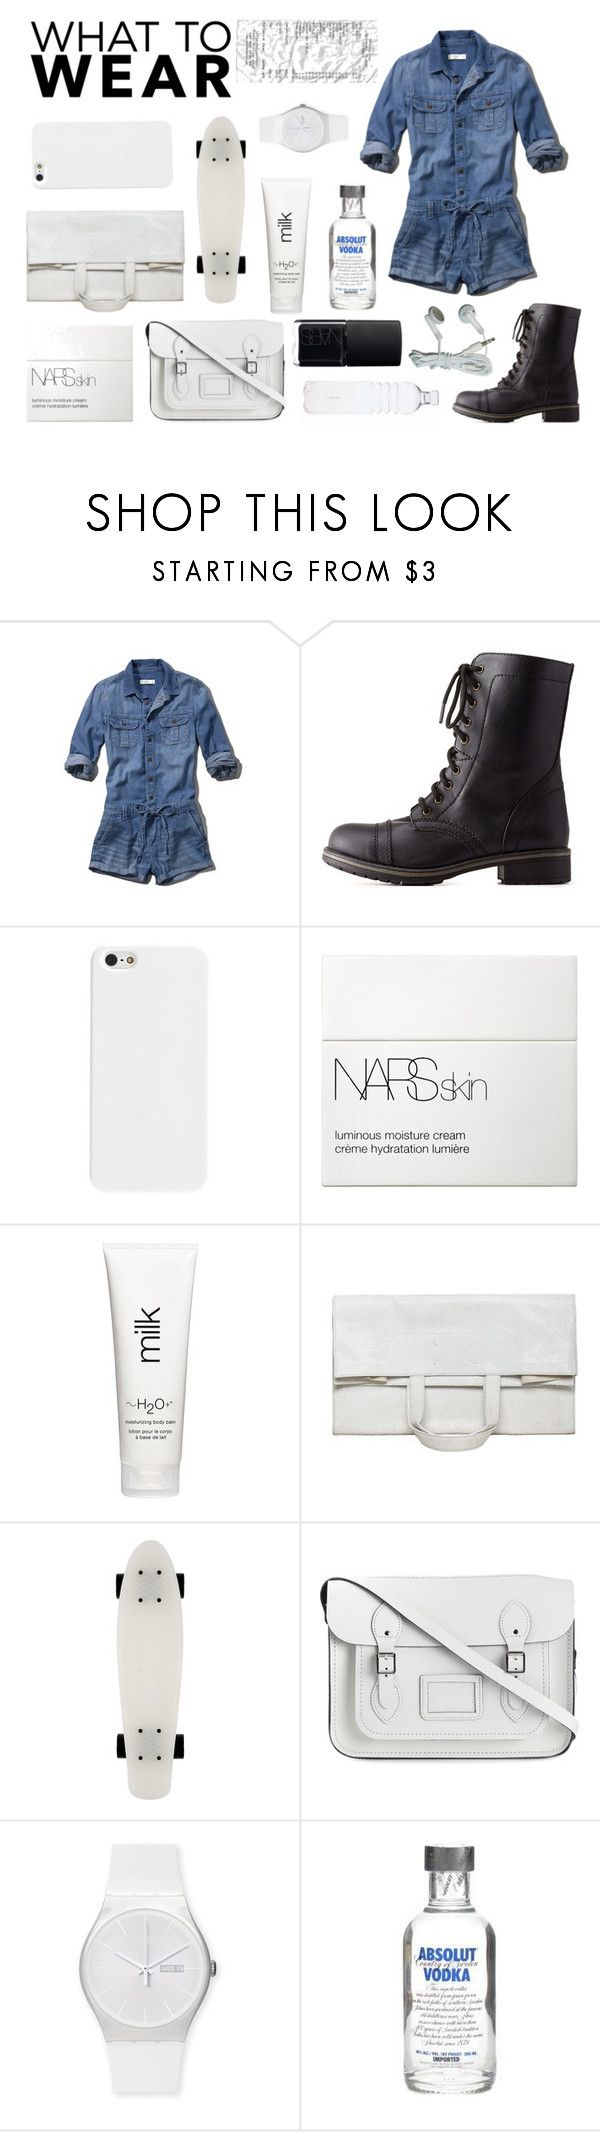 """What to Wear: Black Friday Shopping"" by modernandsmash ❤ liked on Polyvore featuring Abercrombie & Fitch, Charlotte Russe, NARS Cosmetics, H2O+, Maison Margiela, The Cambridge Satchel Company, Swatch and shoptilyoudrop"